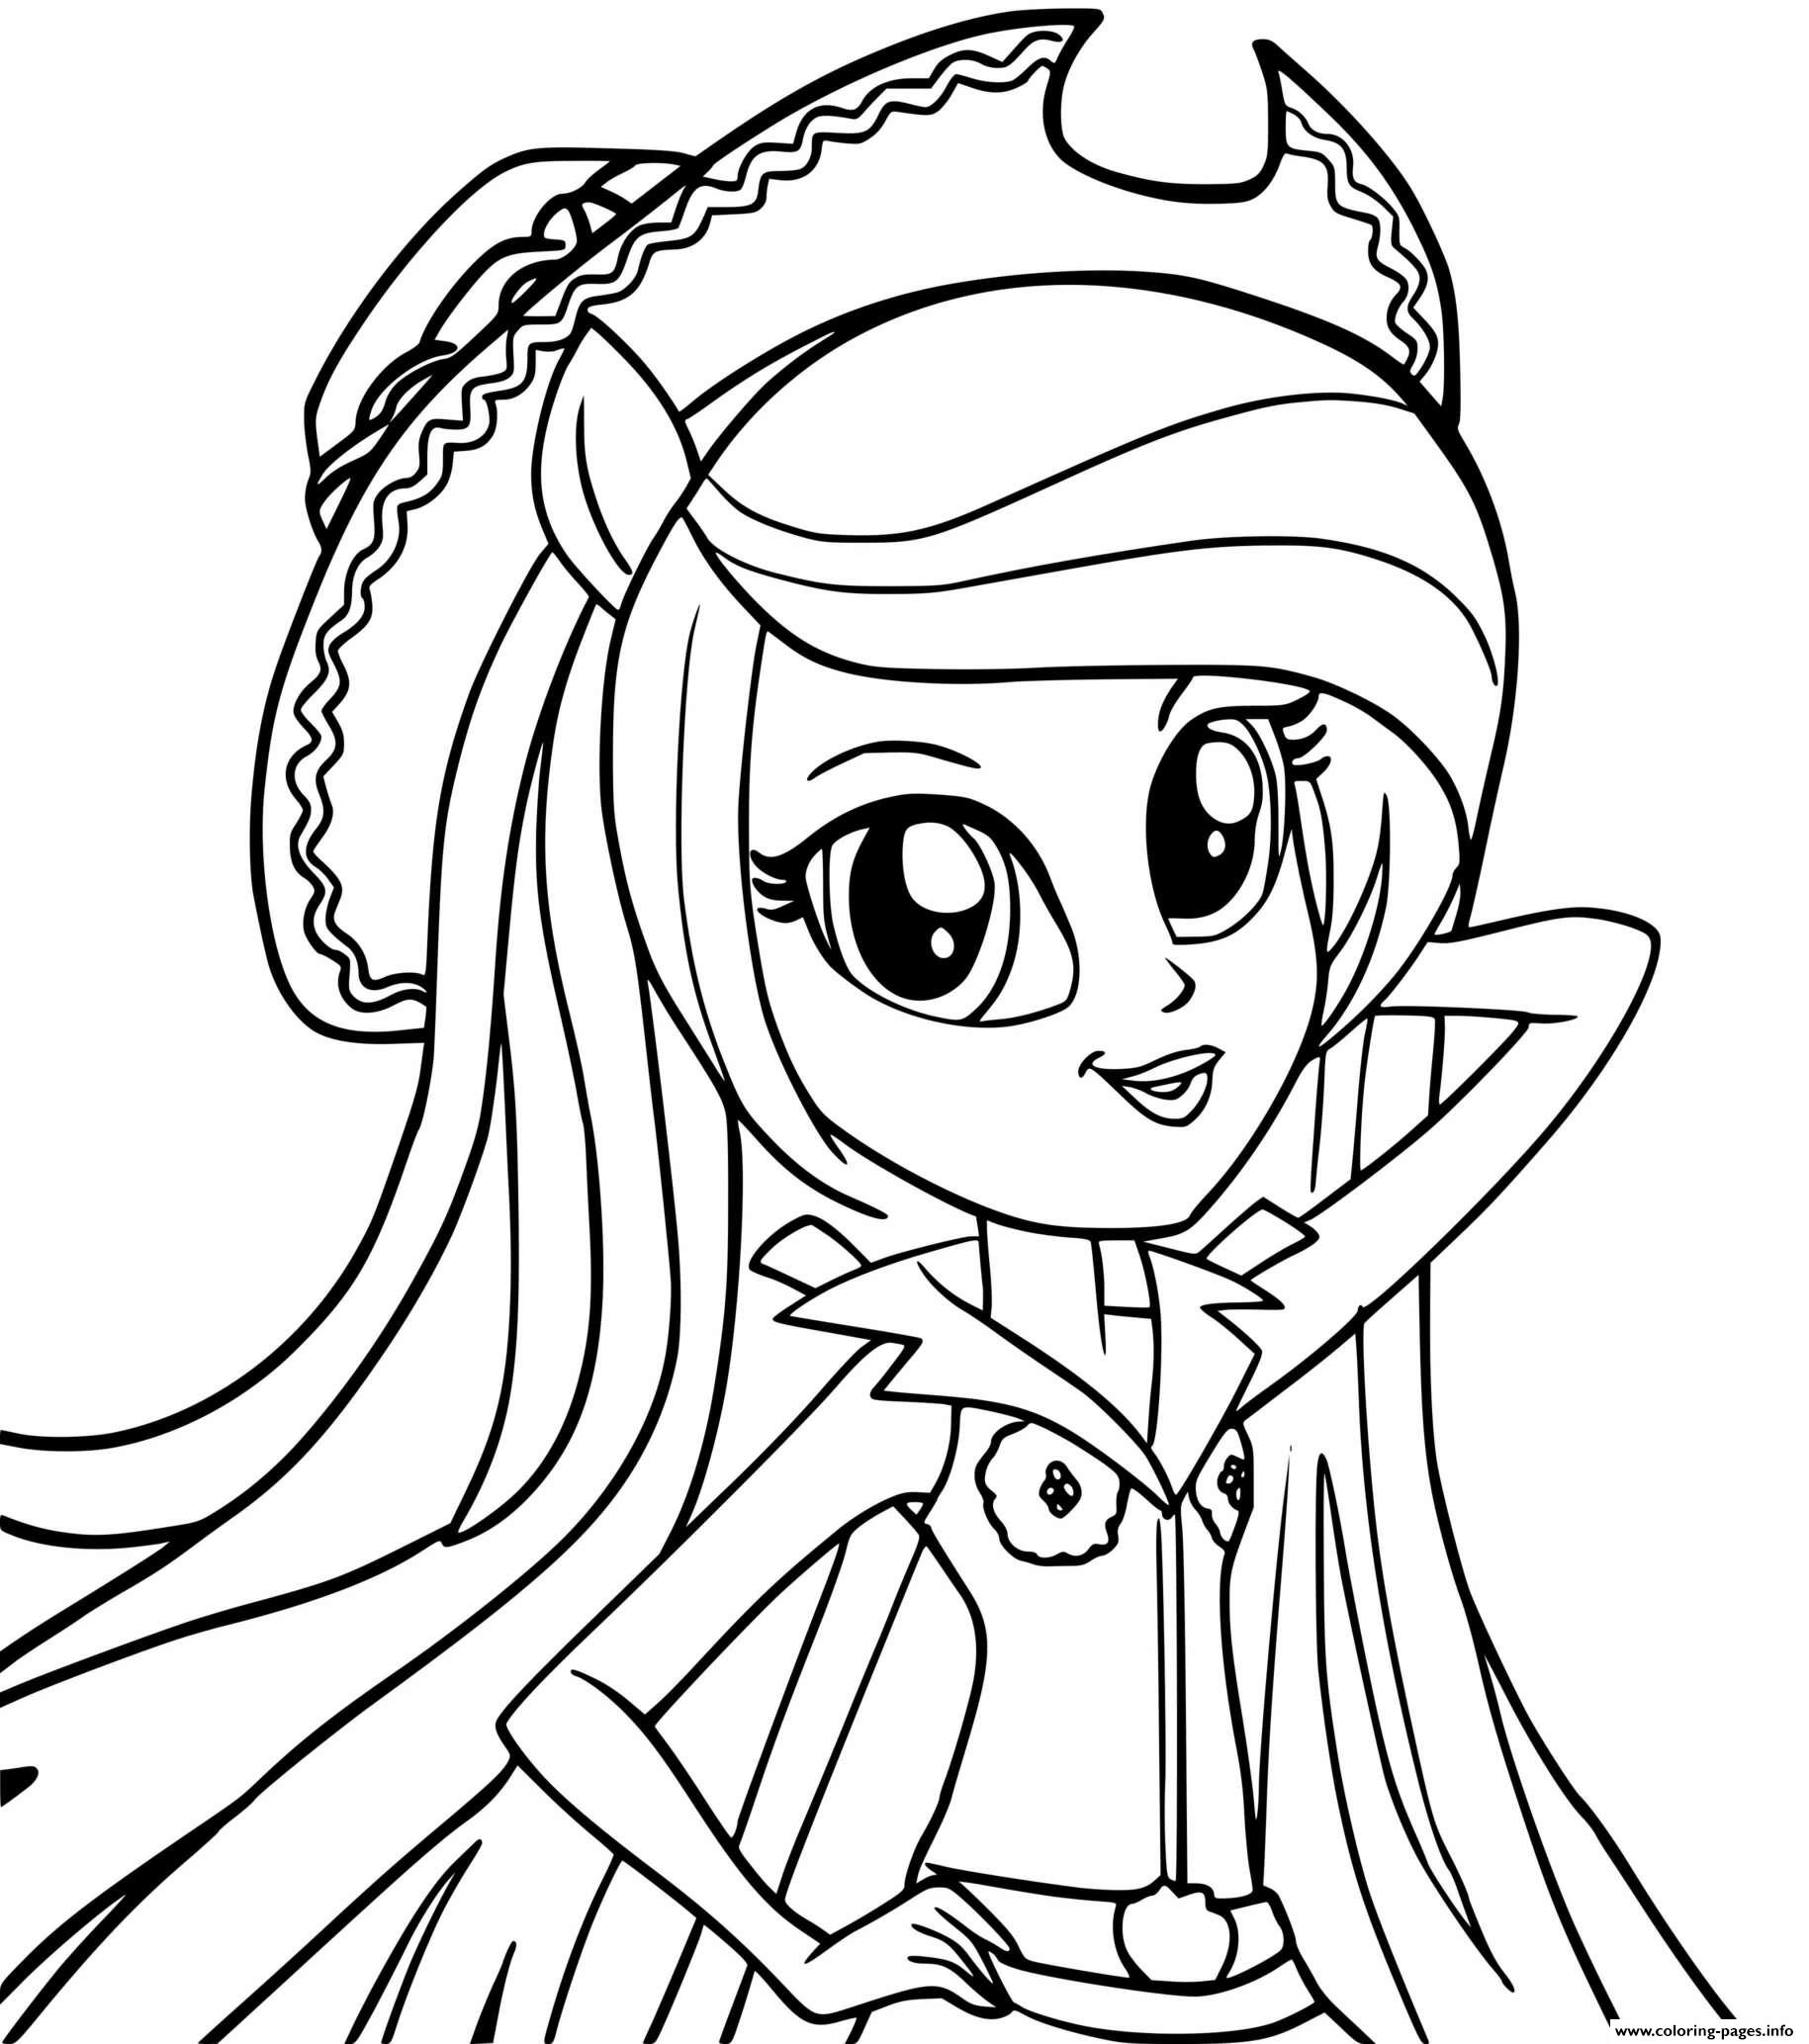 applejack equestria girls coloring pages applejack equestria girls coloring sheet super fun coloring pages girls coloring applejack equestria